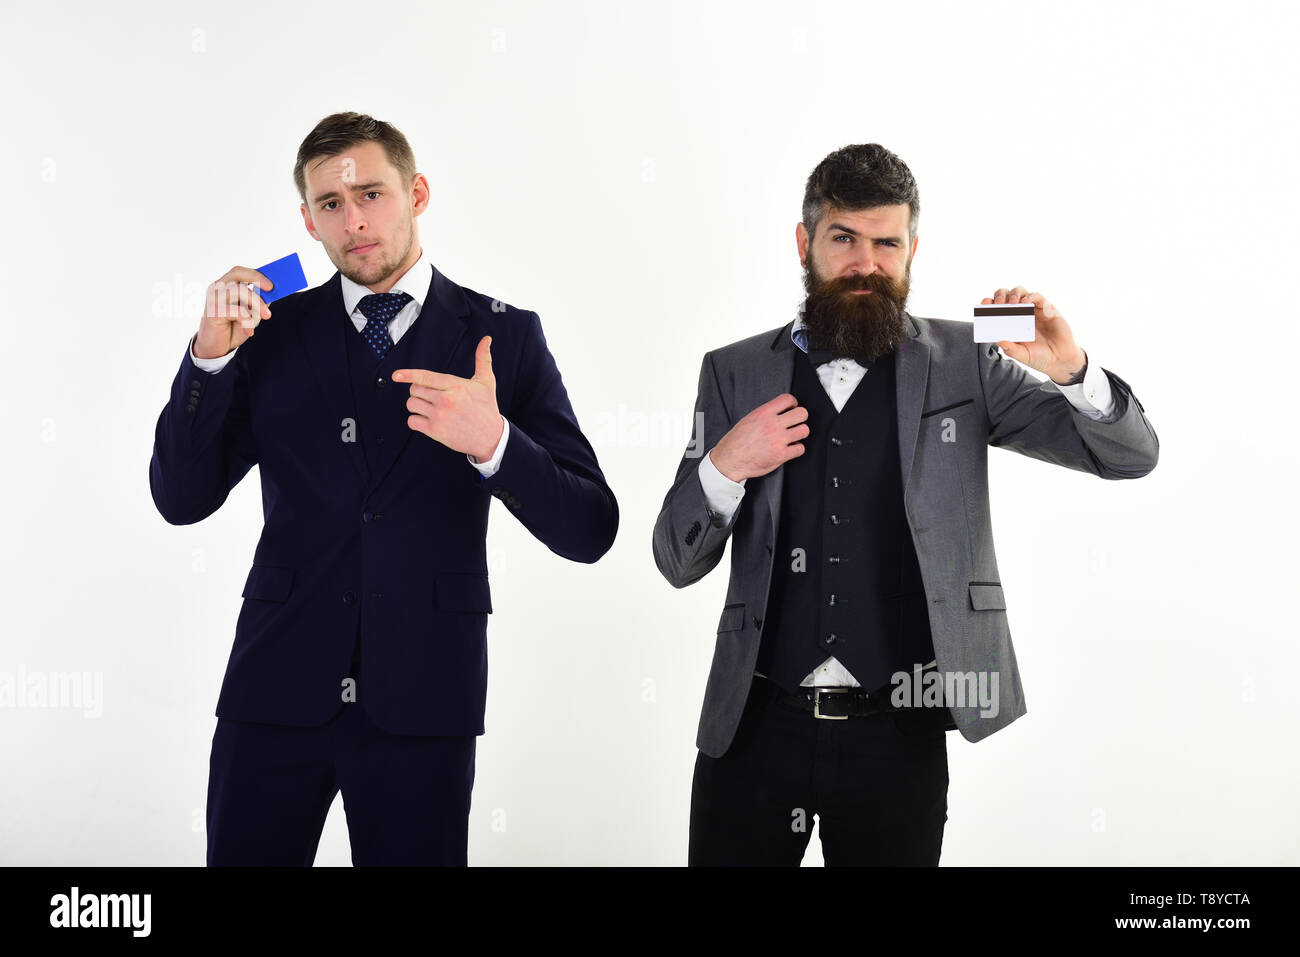 Businessmen hold credit cards. Banker trust in safety and reliability of banking system. Banking concept. Men in formal suit holds plastic cards and - Stock Image